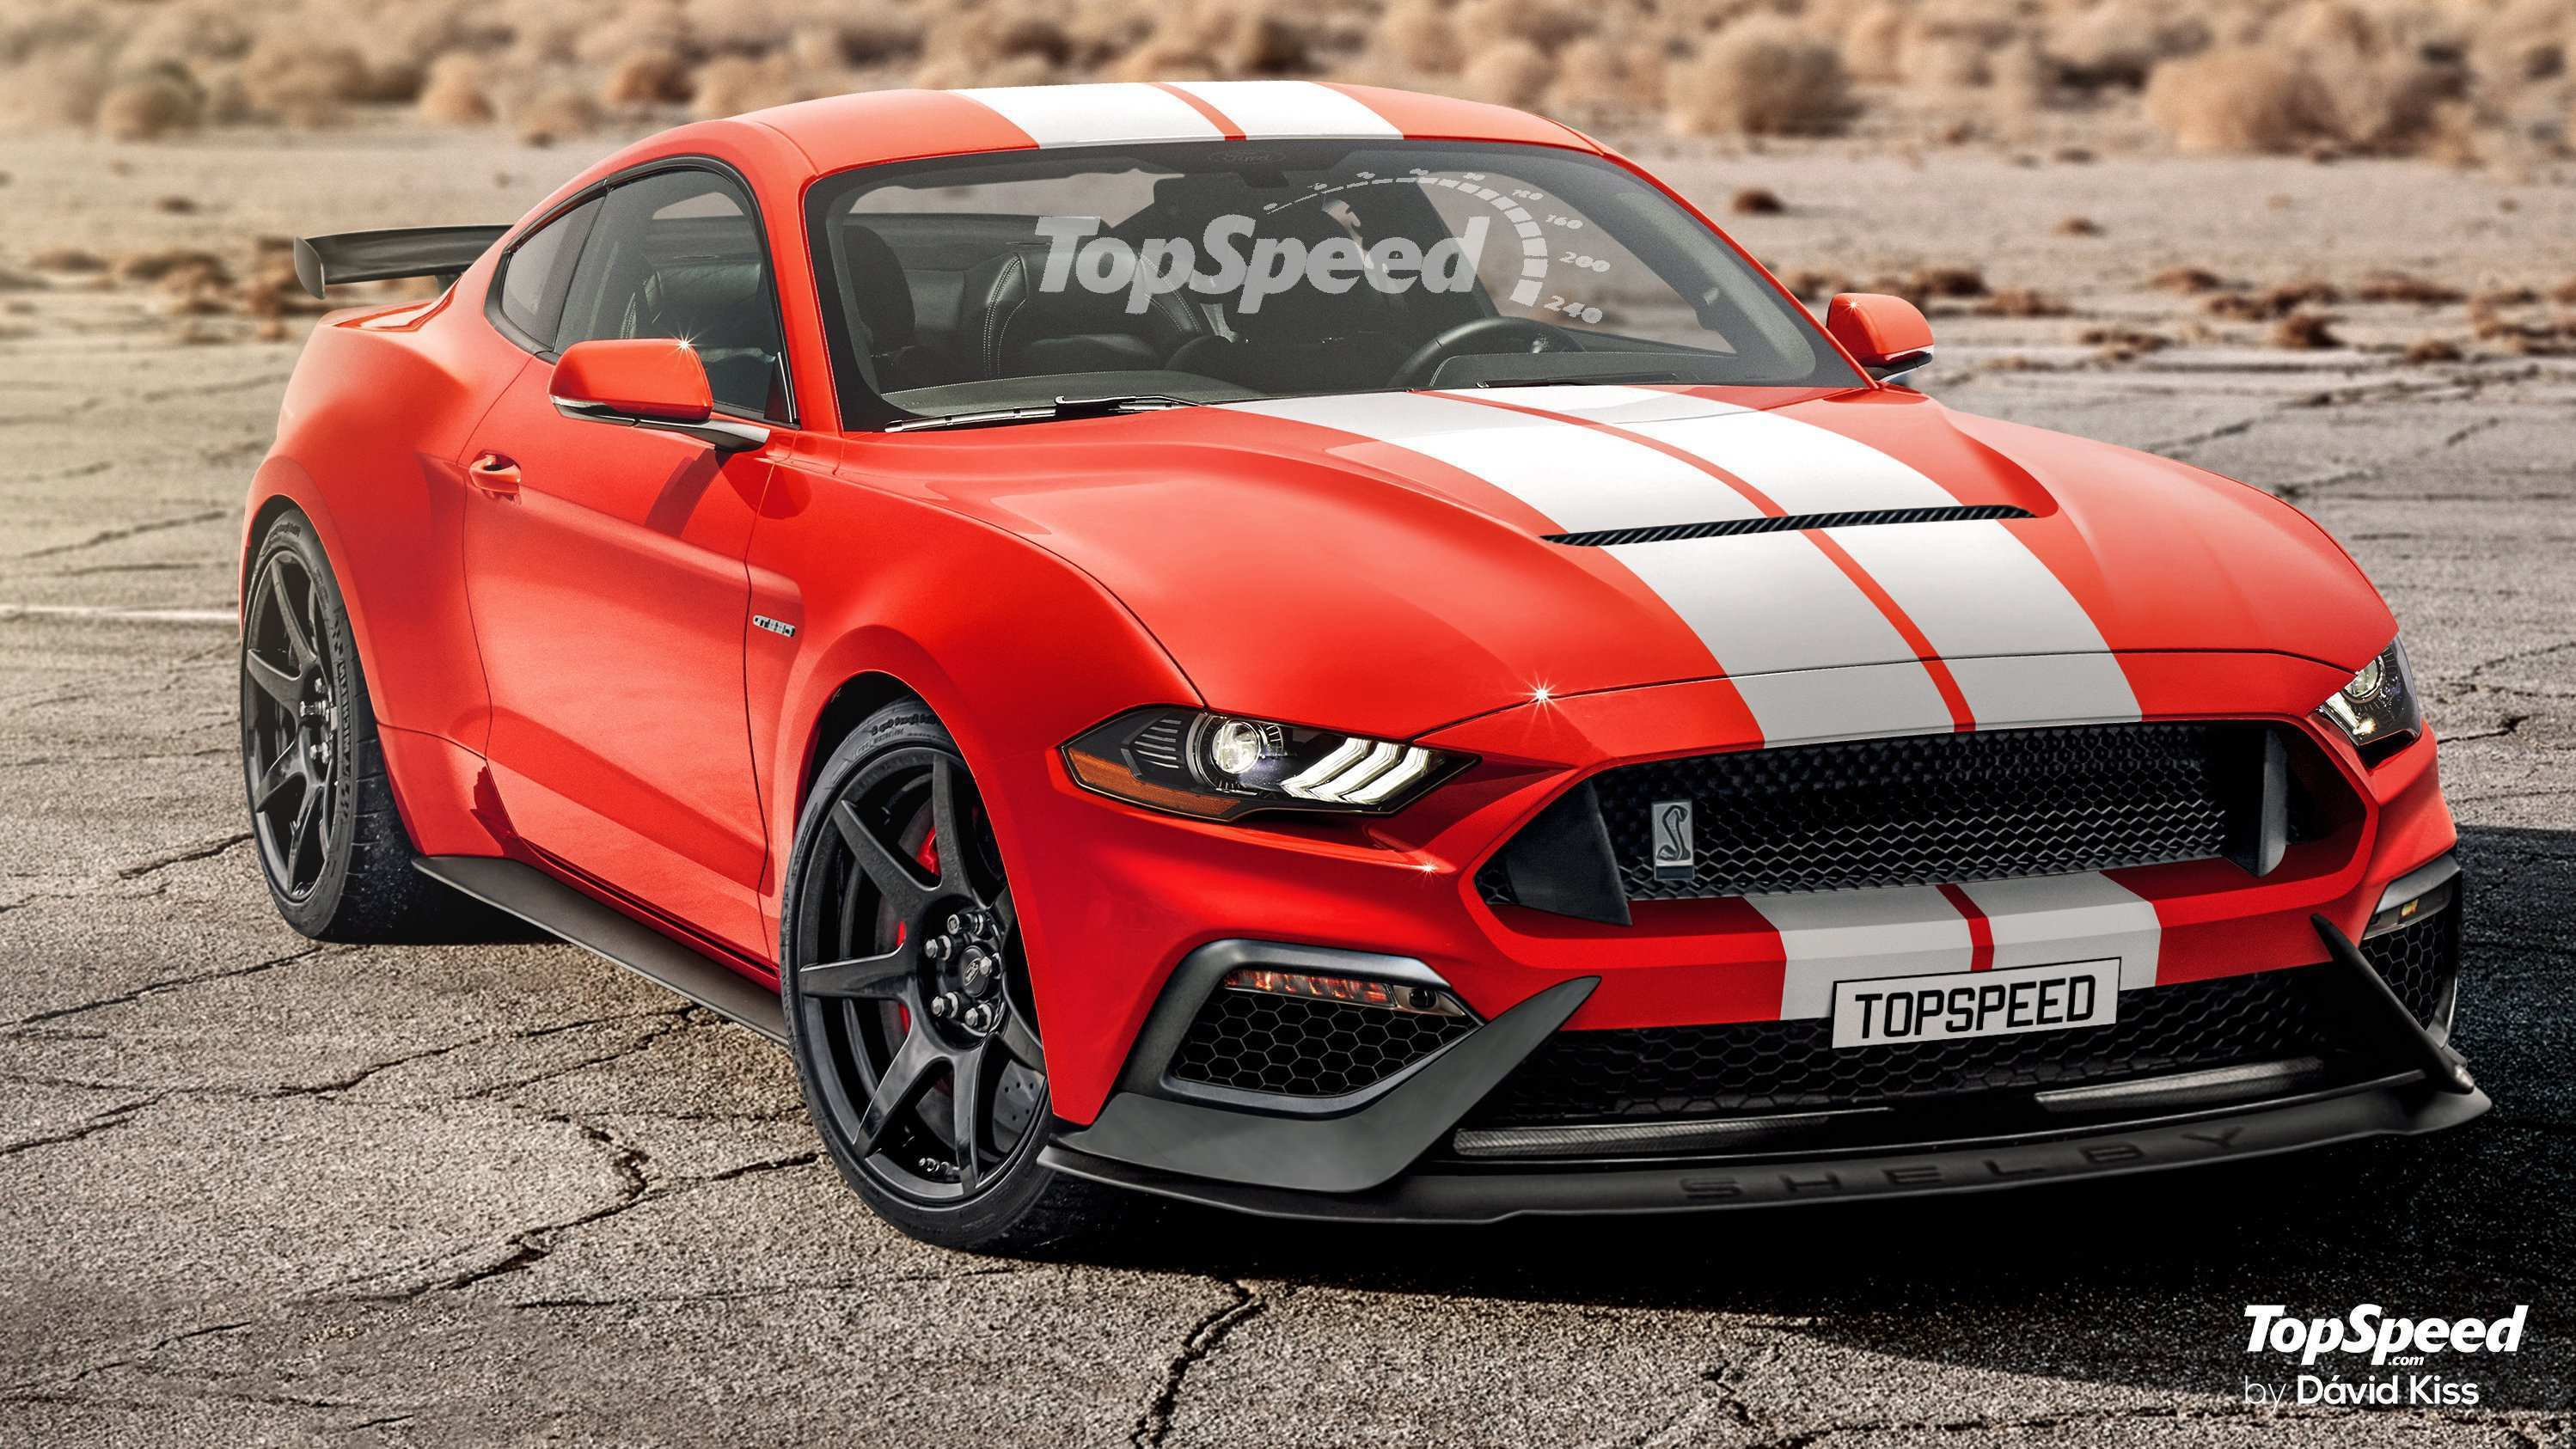 14 Concept of 2019 Ford Shelby Gt500 Specs and Review for 2019 Ford Shelby Gt500